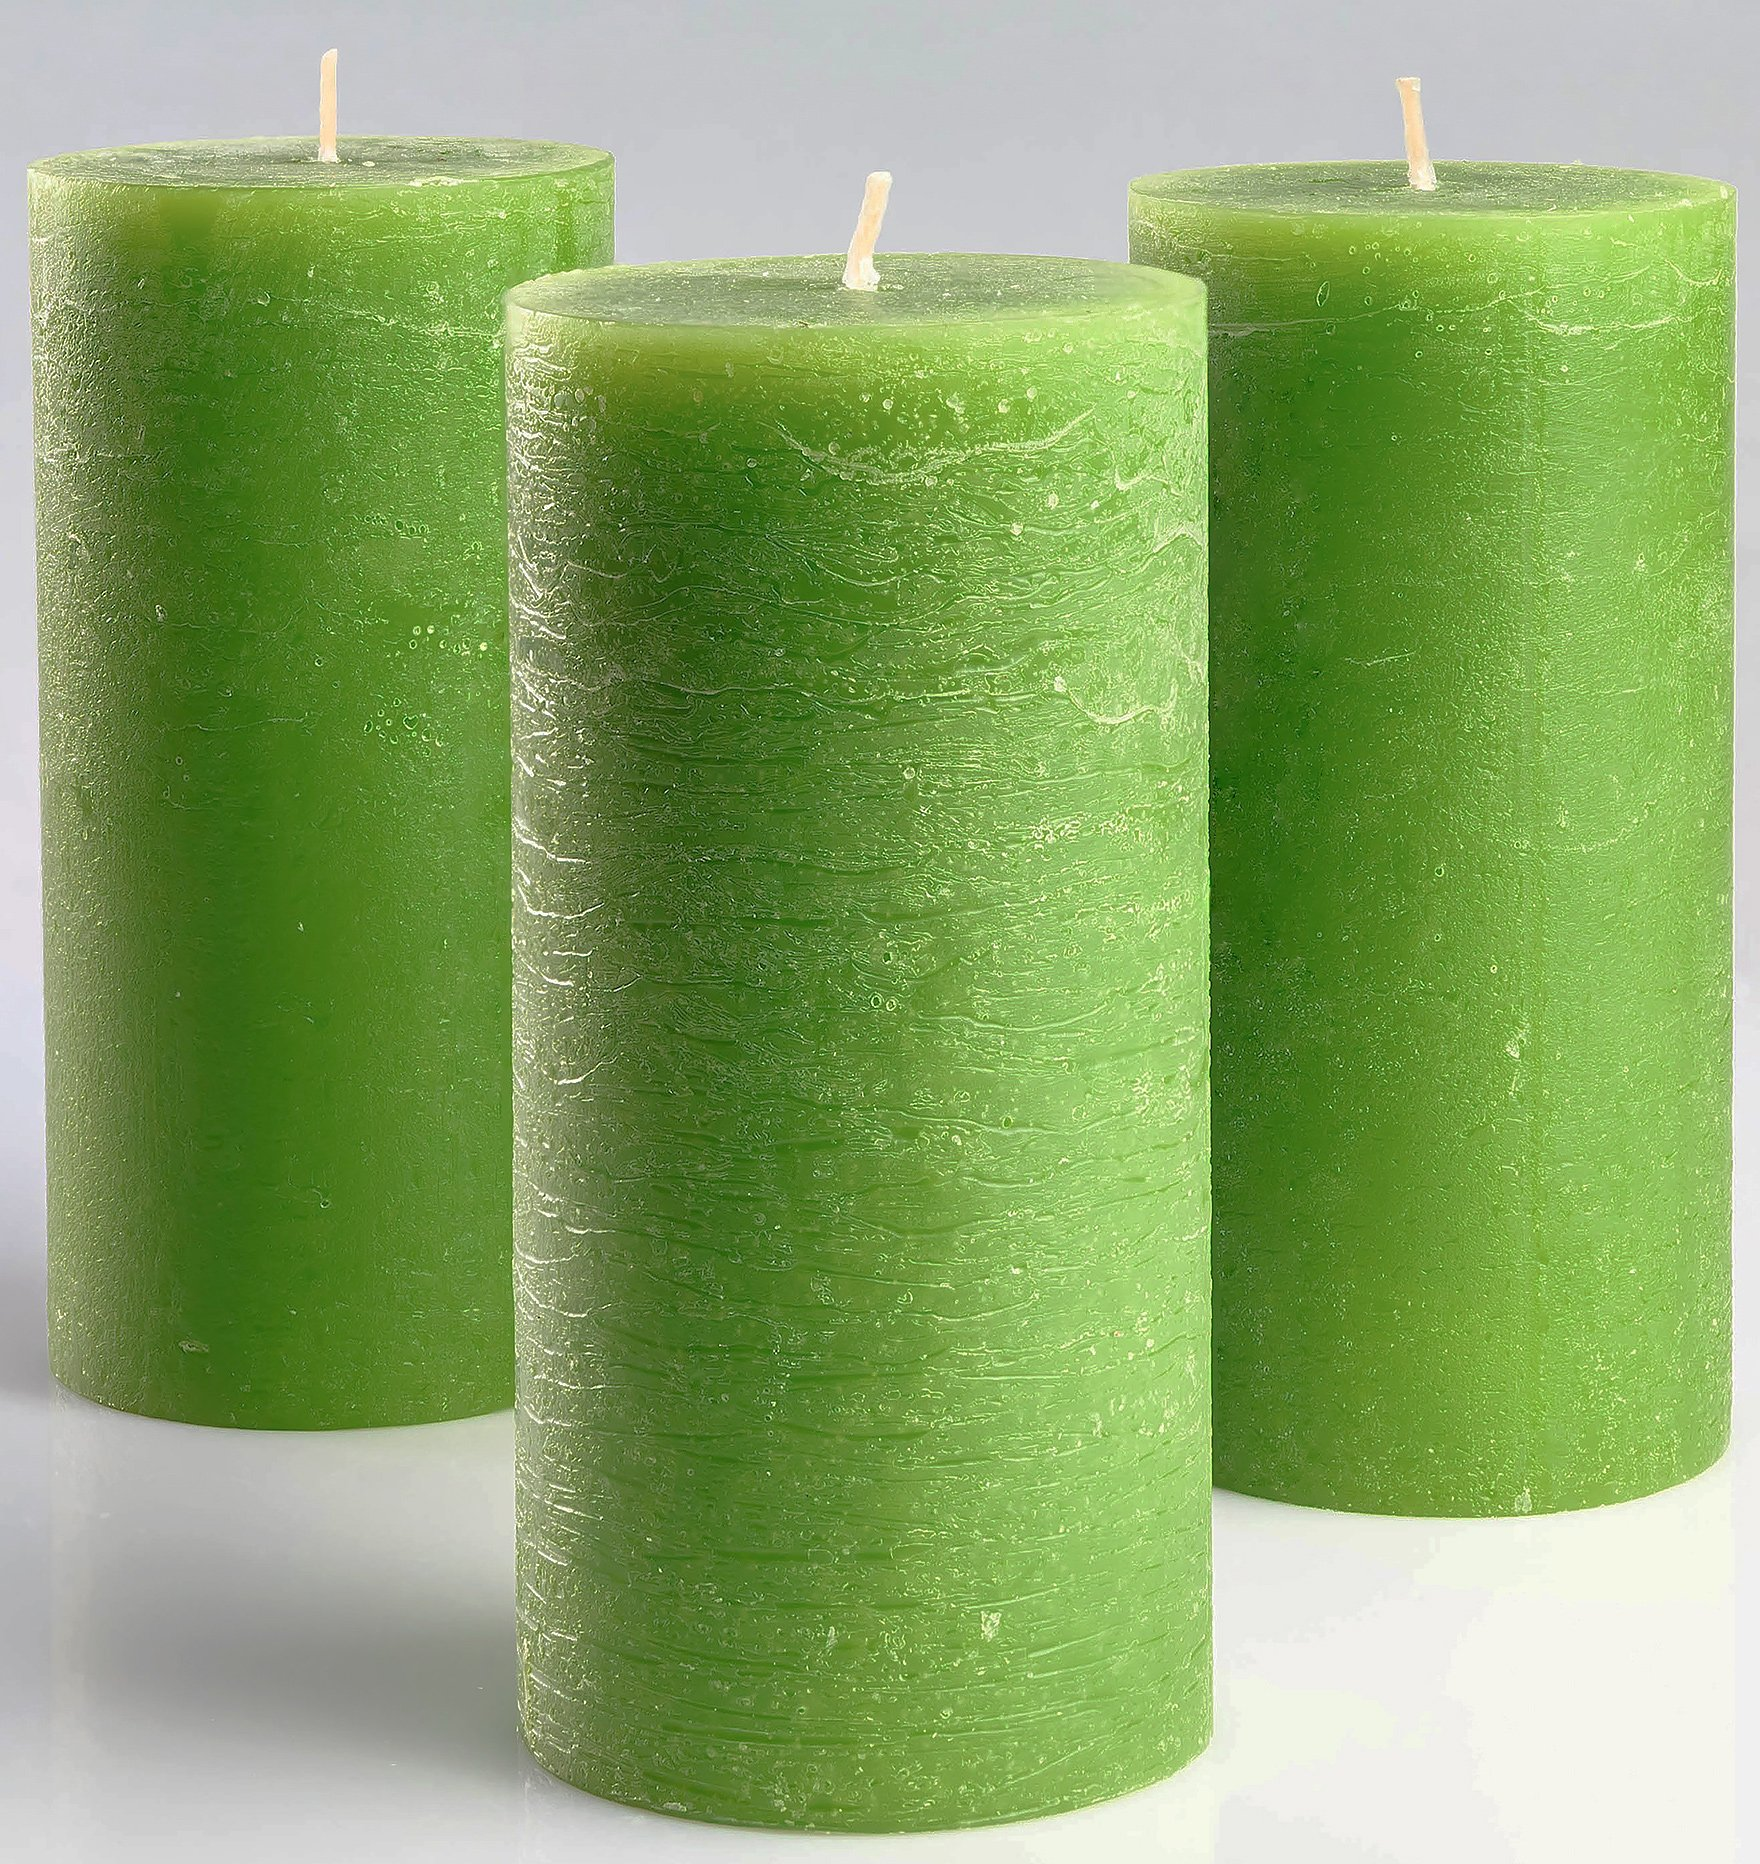 Melt Candle Company Set of 3 Green Pillar Candles 3'' x 6'' - Unscented Fragrance-Free Candles Weddings, Decoration, Restaurant, Spa, Church - Smokeless & Dripless